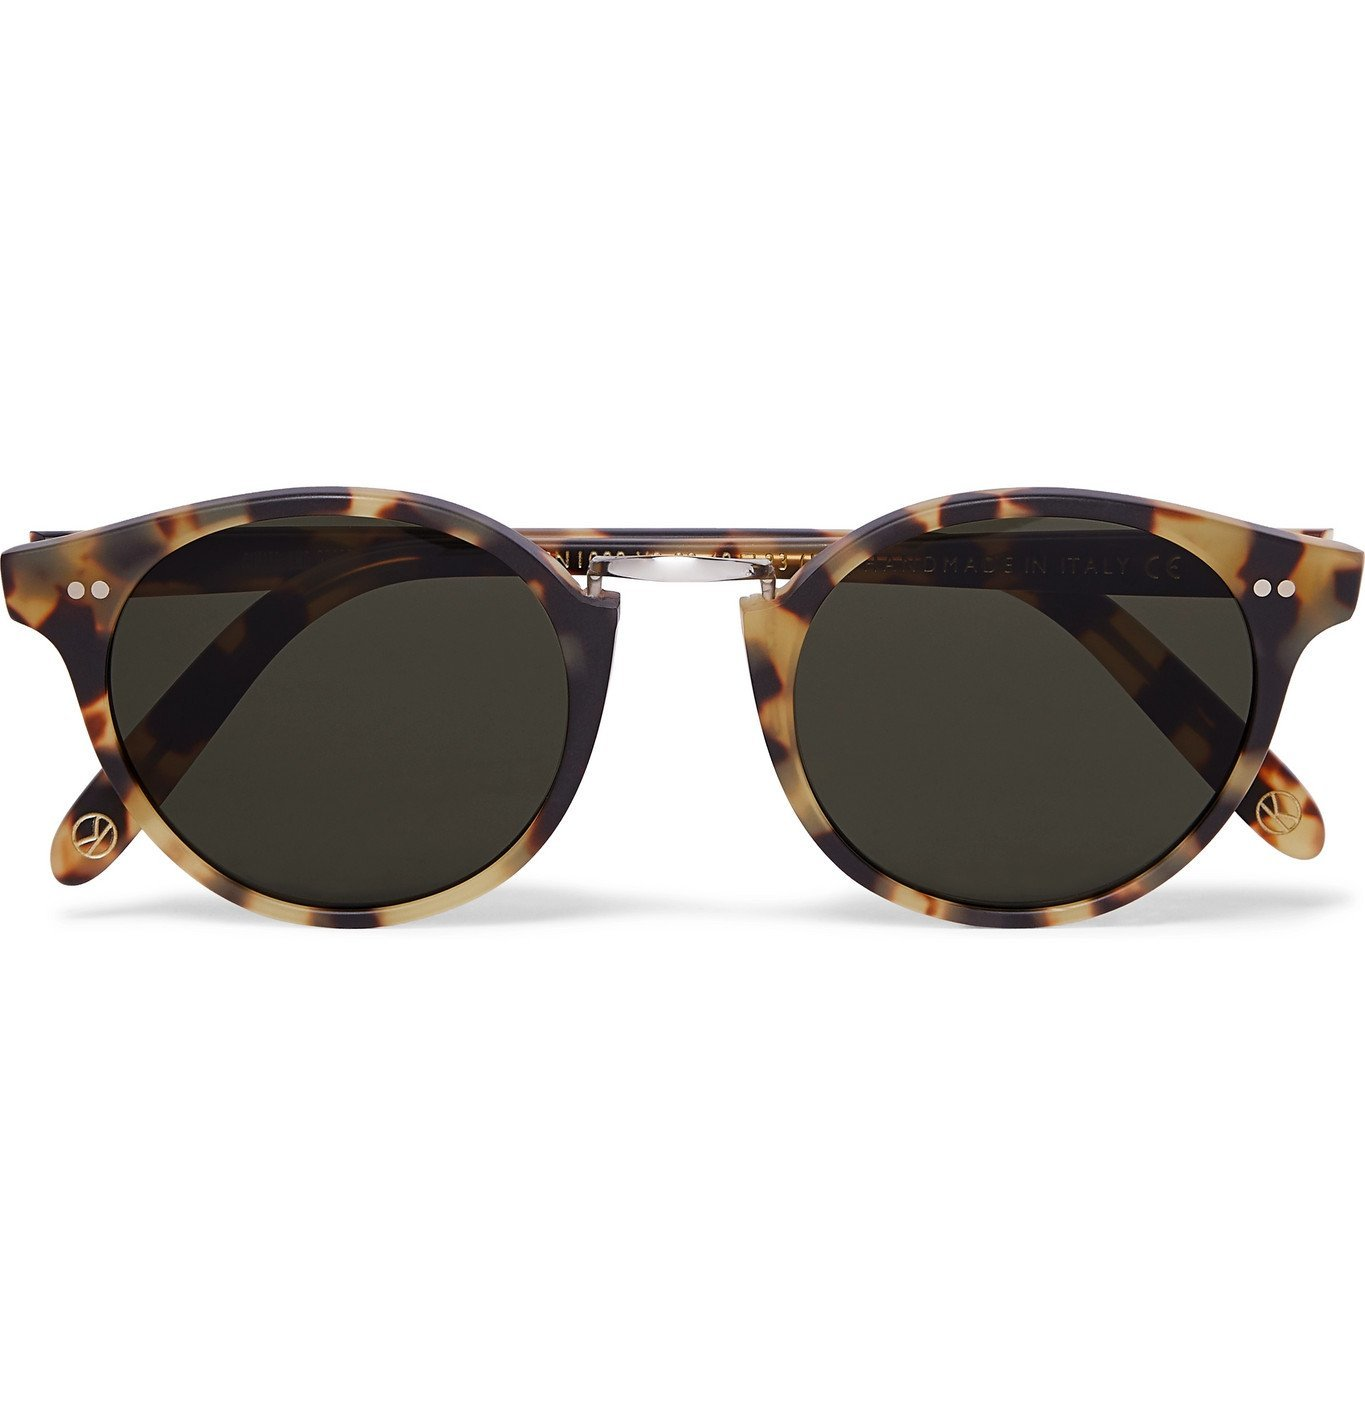 Photo: Kingsman - Cutler and Gross Round-Frame Tortoiseshell Acetate and Silver-Tone Metal Sunglasses - Tortoiseshell